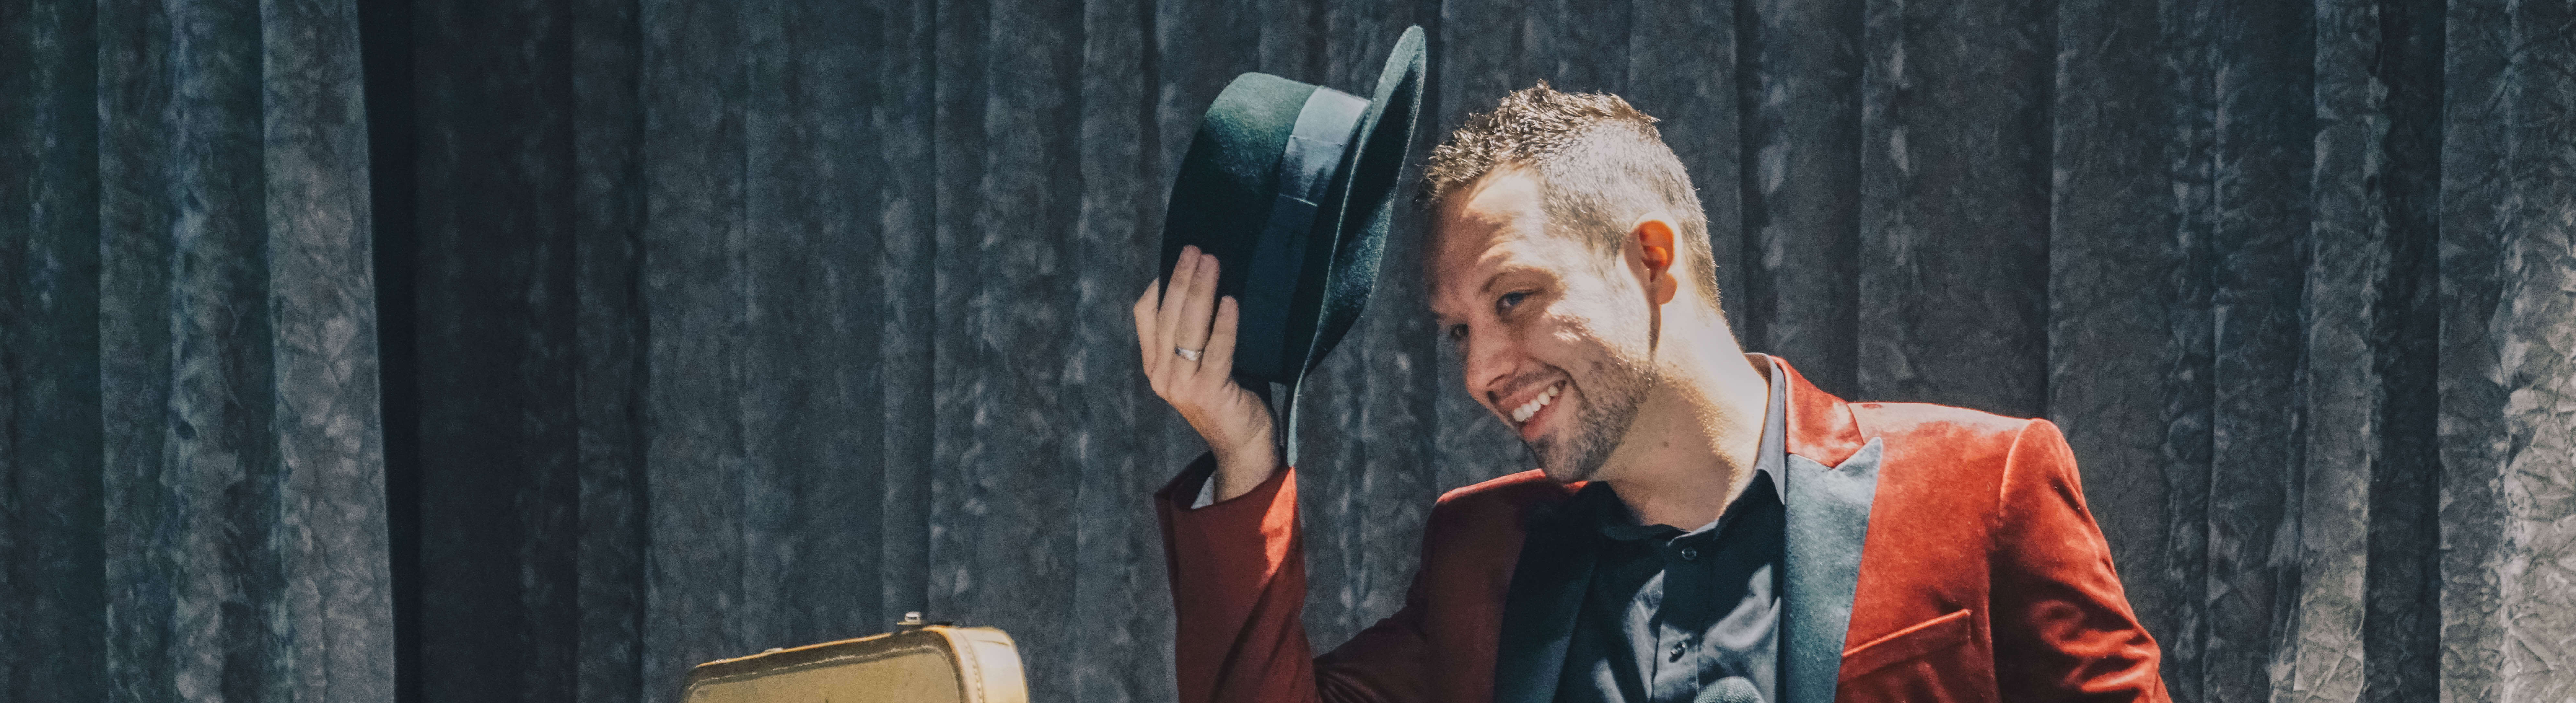 Brandon Styles tipping his hat while performing on stage